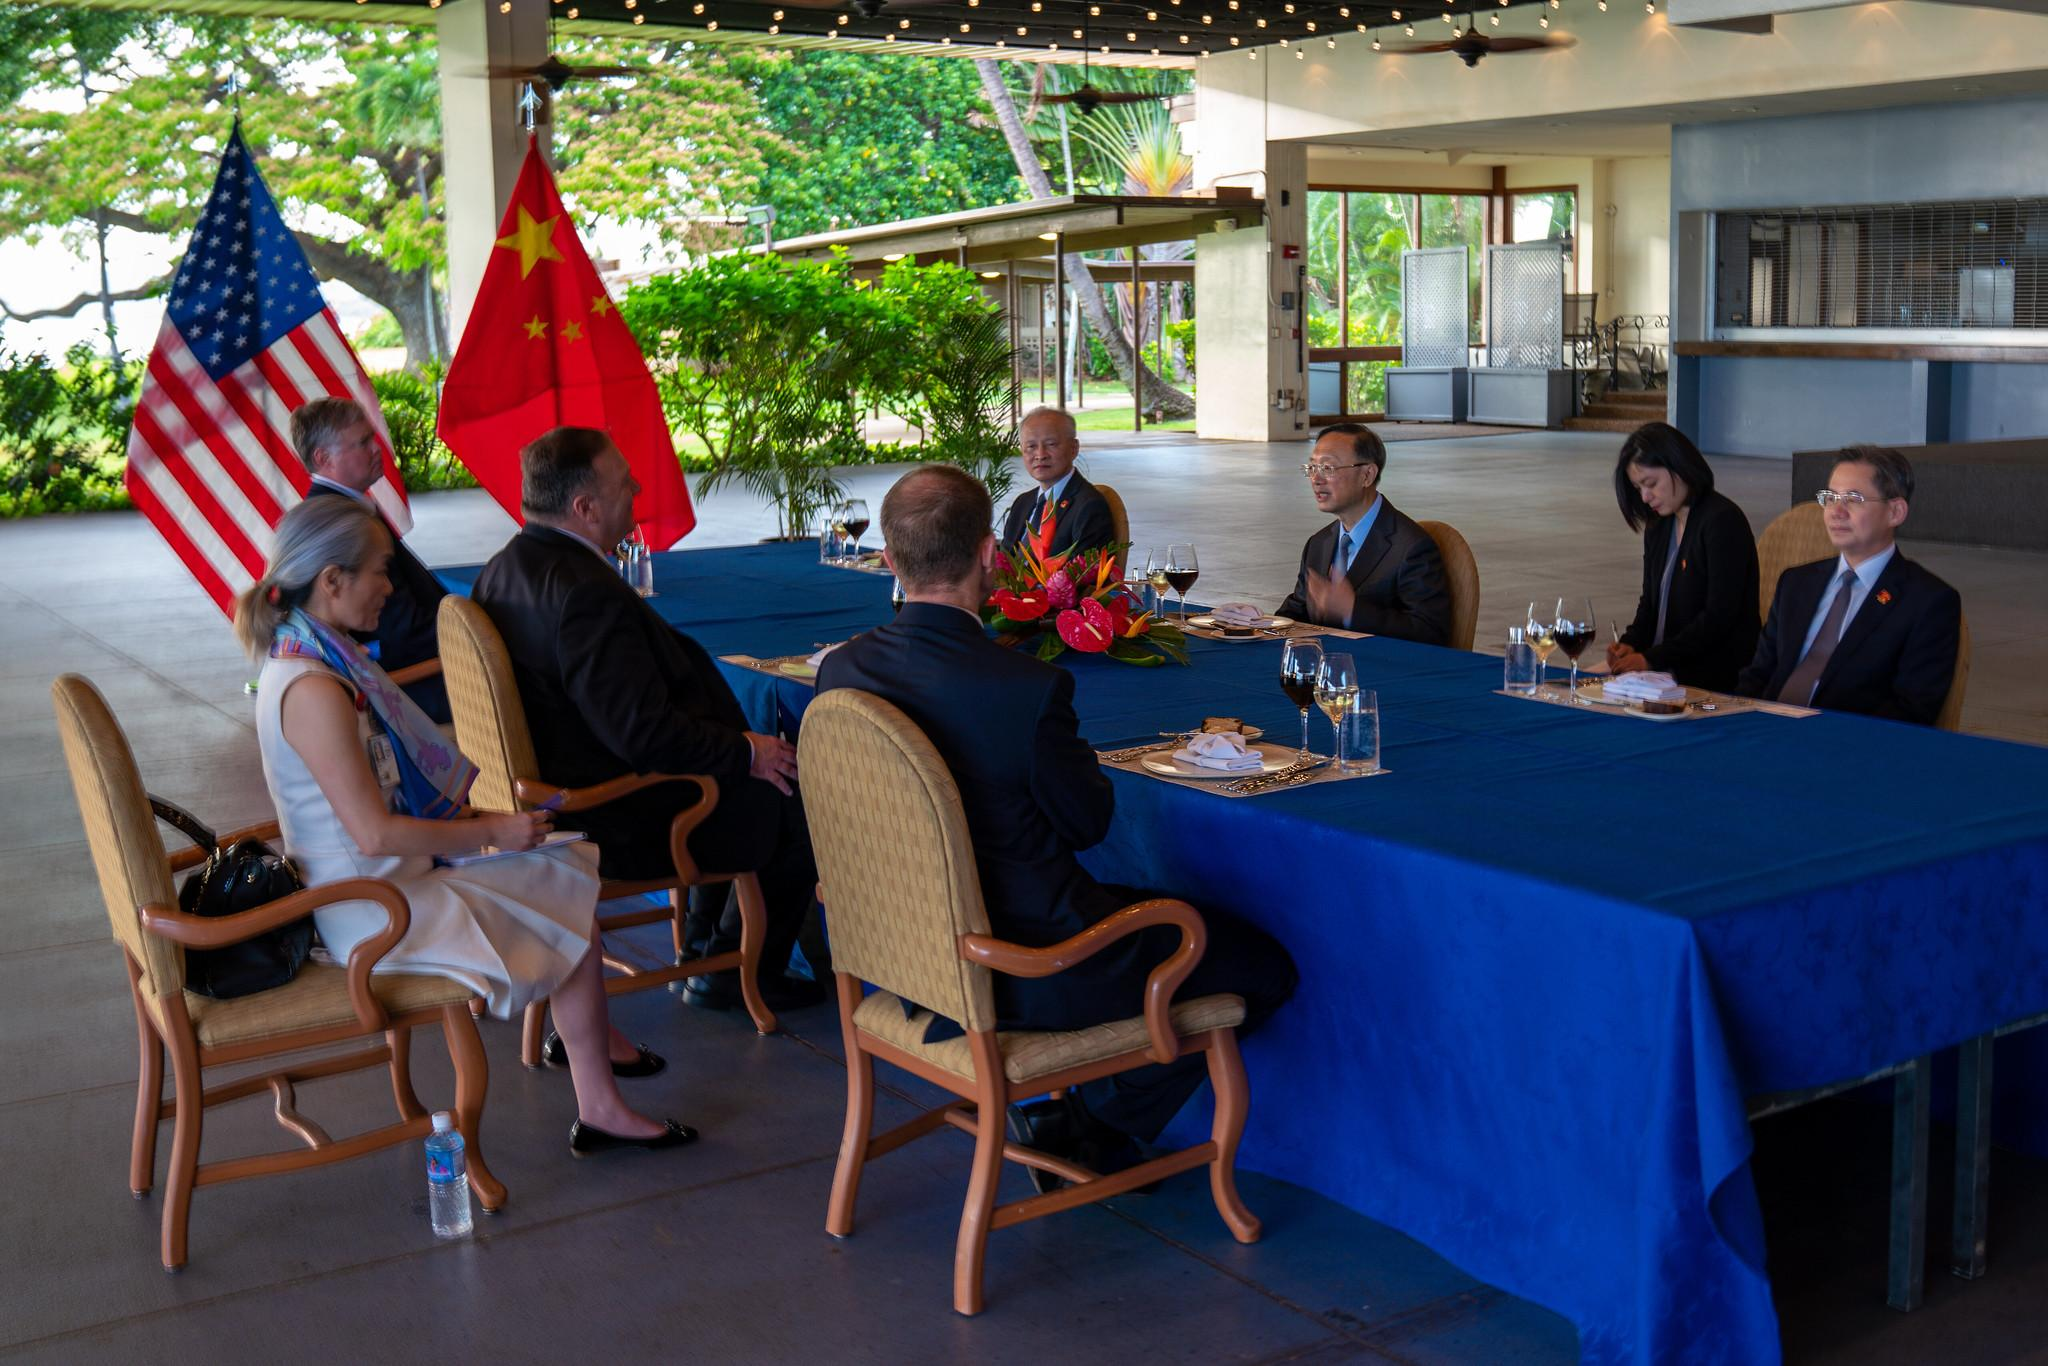 What Happened at the US-China Meeting in Hawaii? Thumbnail